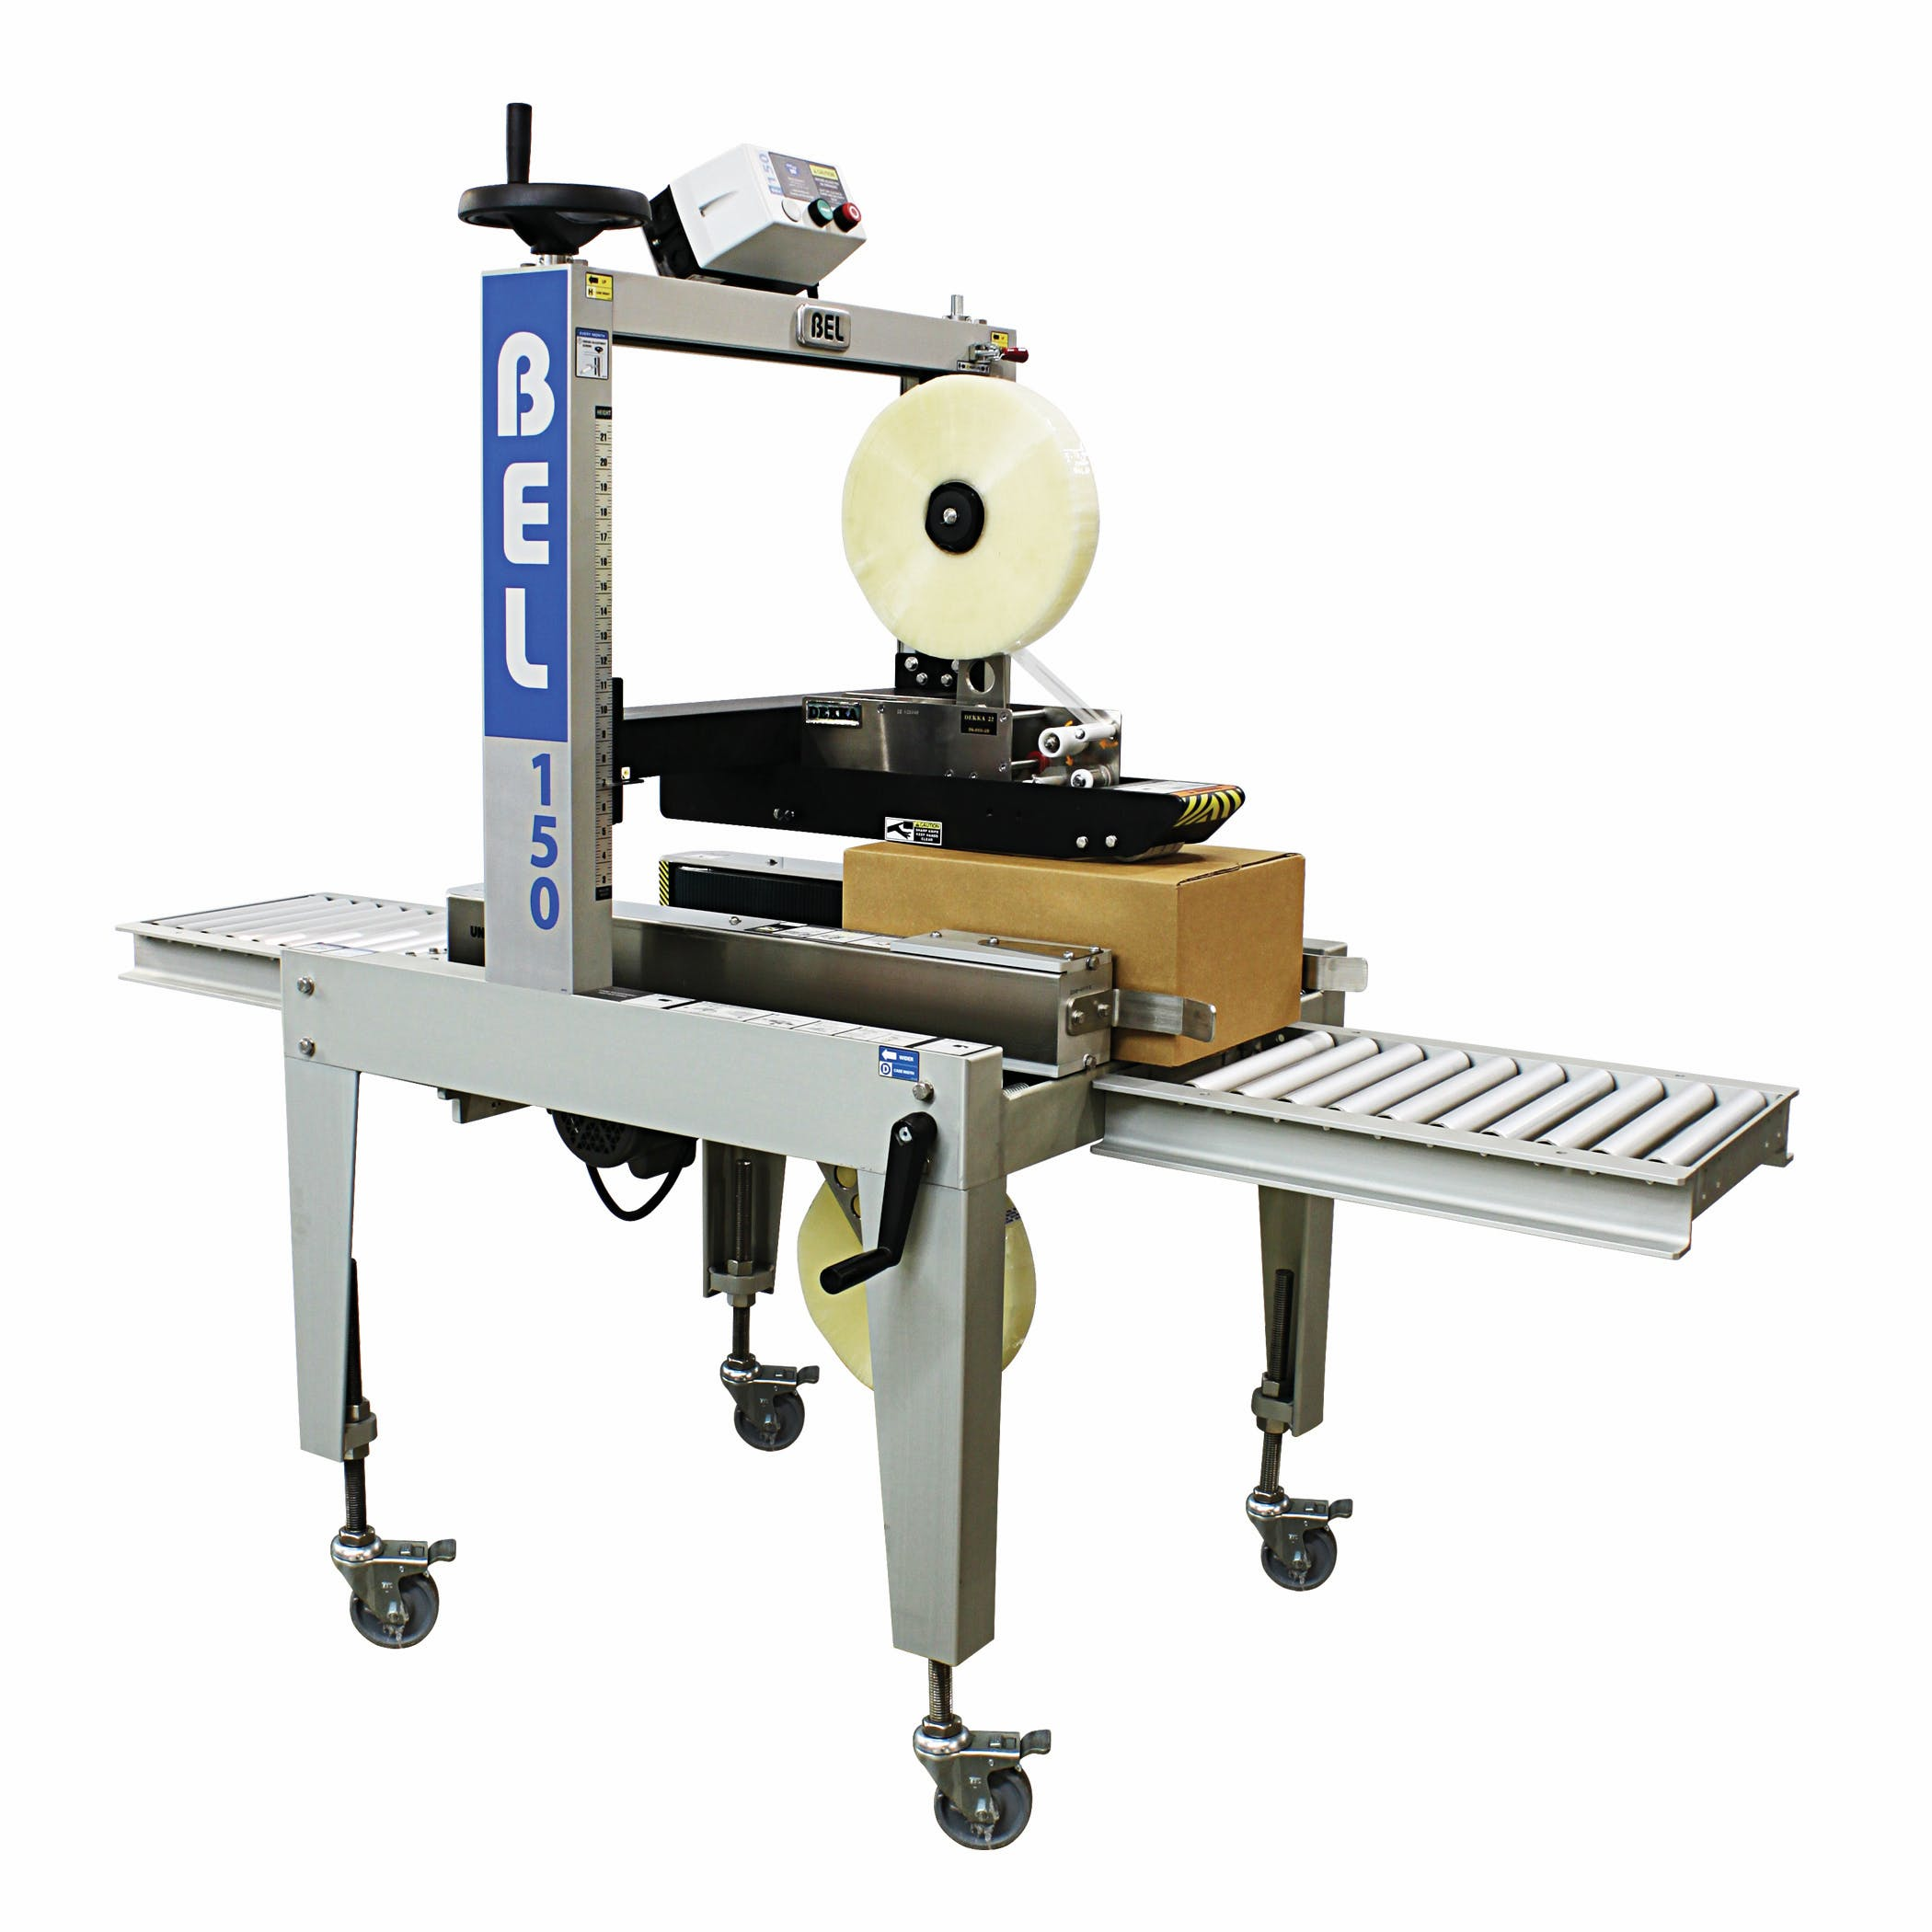 BEL 150 - Top and Bottom Sealer.  Semi-Auto. - Belcor Case Sealer - BEL-150, Semi-Automatic - sold by Package Devices LLC